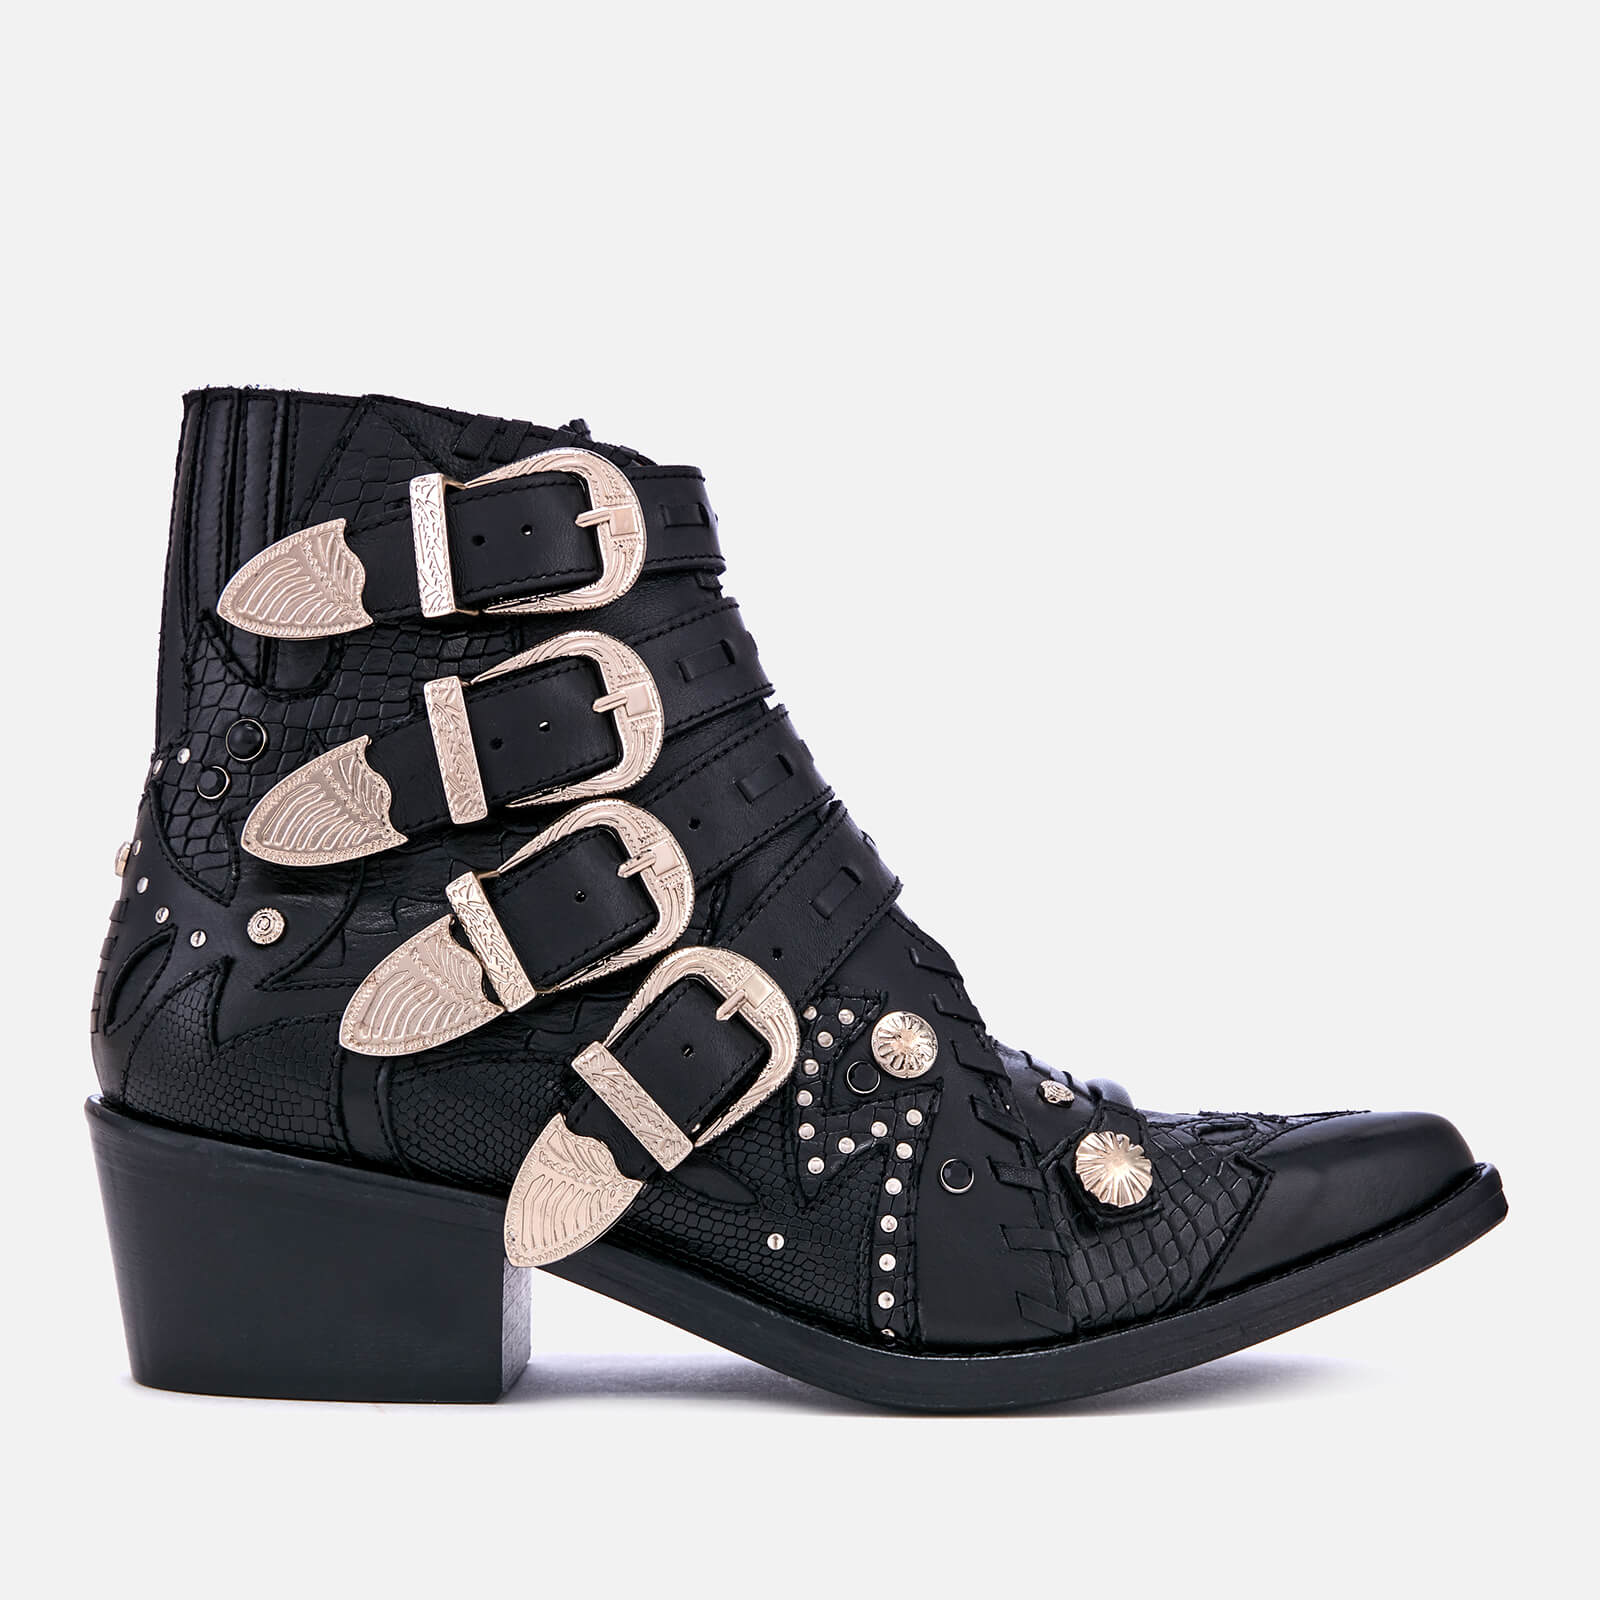 93edb0e170 Toga Pulla Women's Buckle Leather Heeled Ankle Boots - Black - Free UK  Delivery over £50